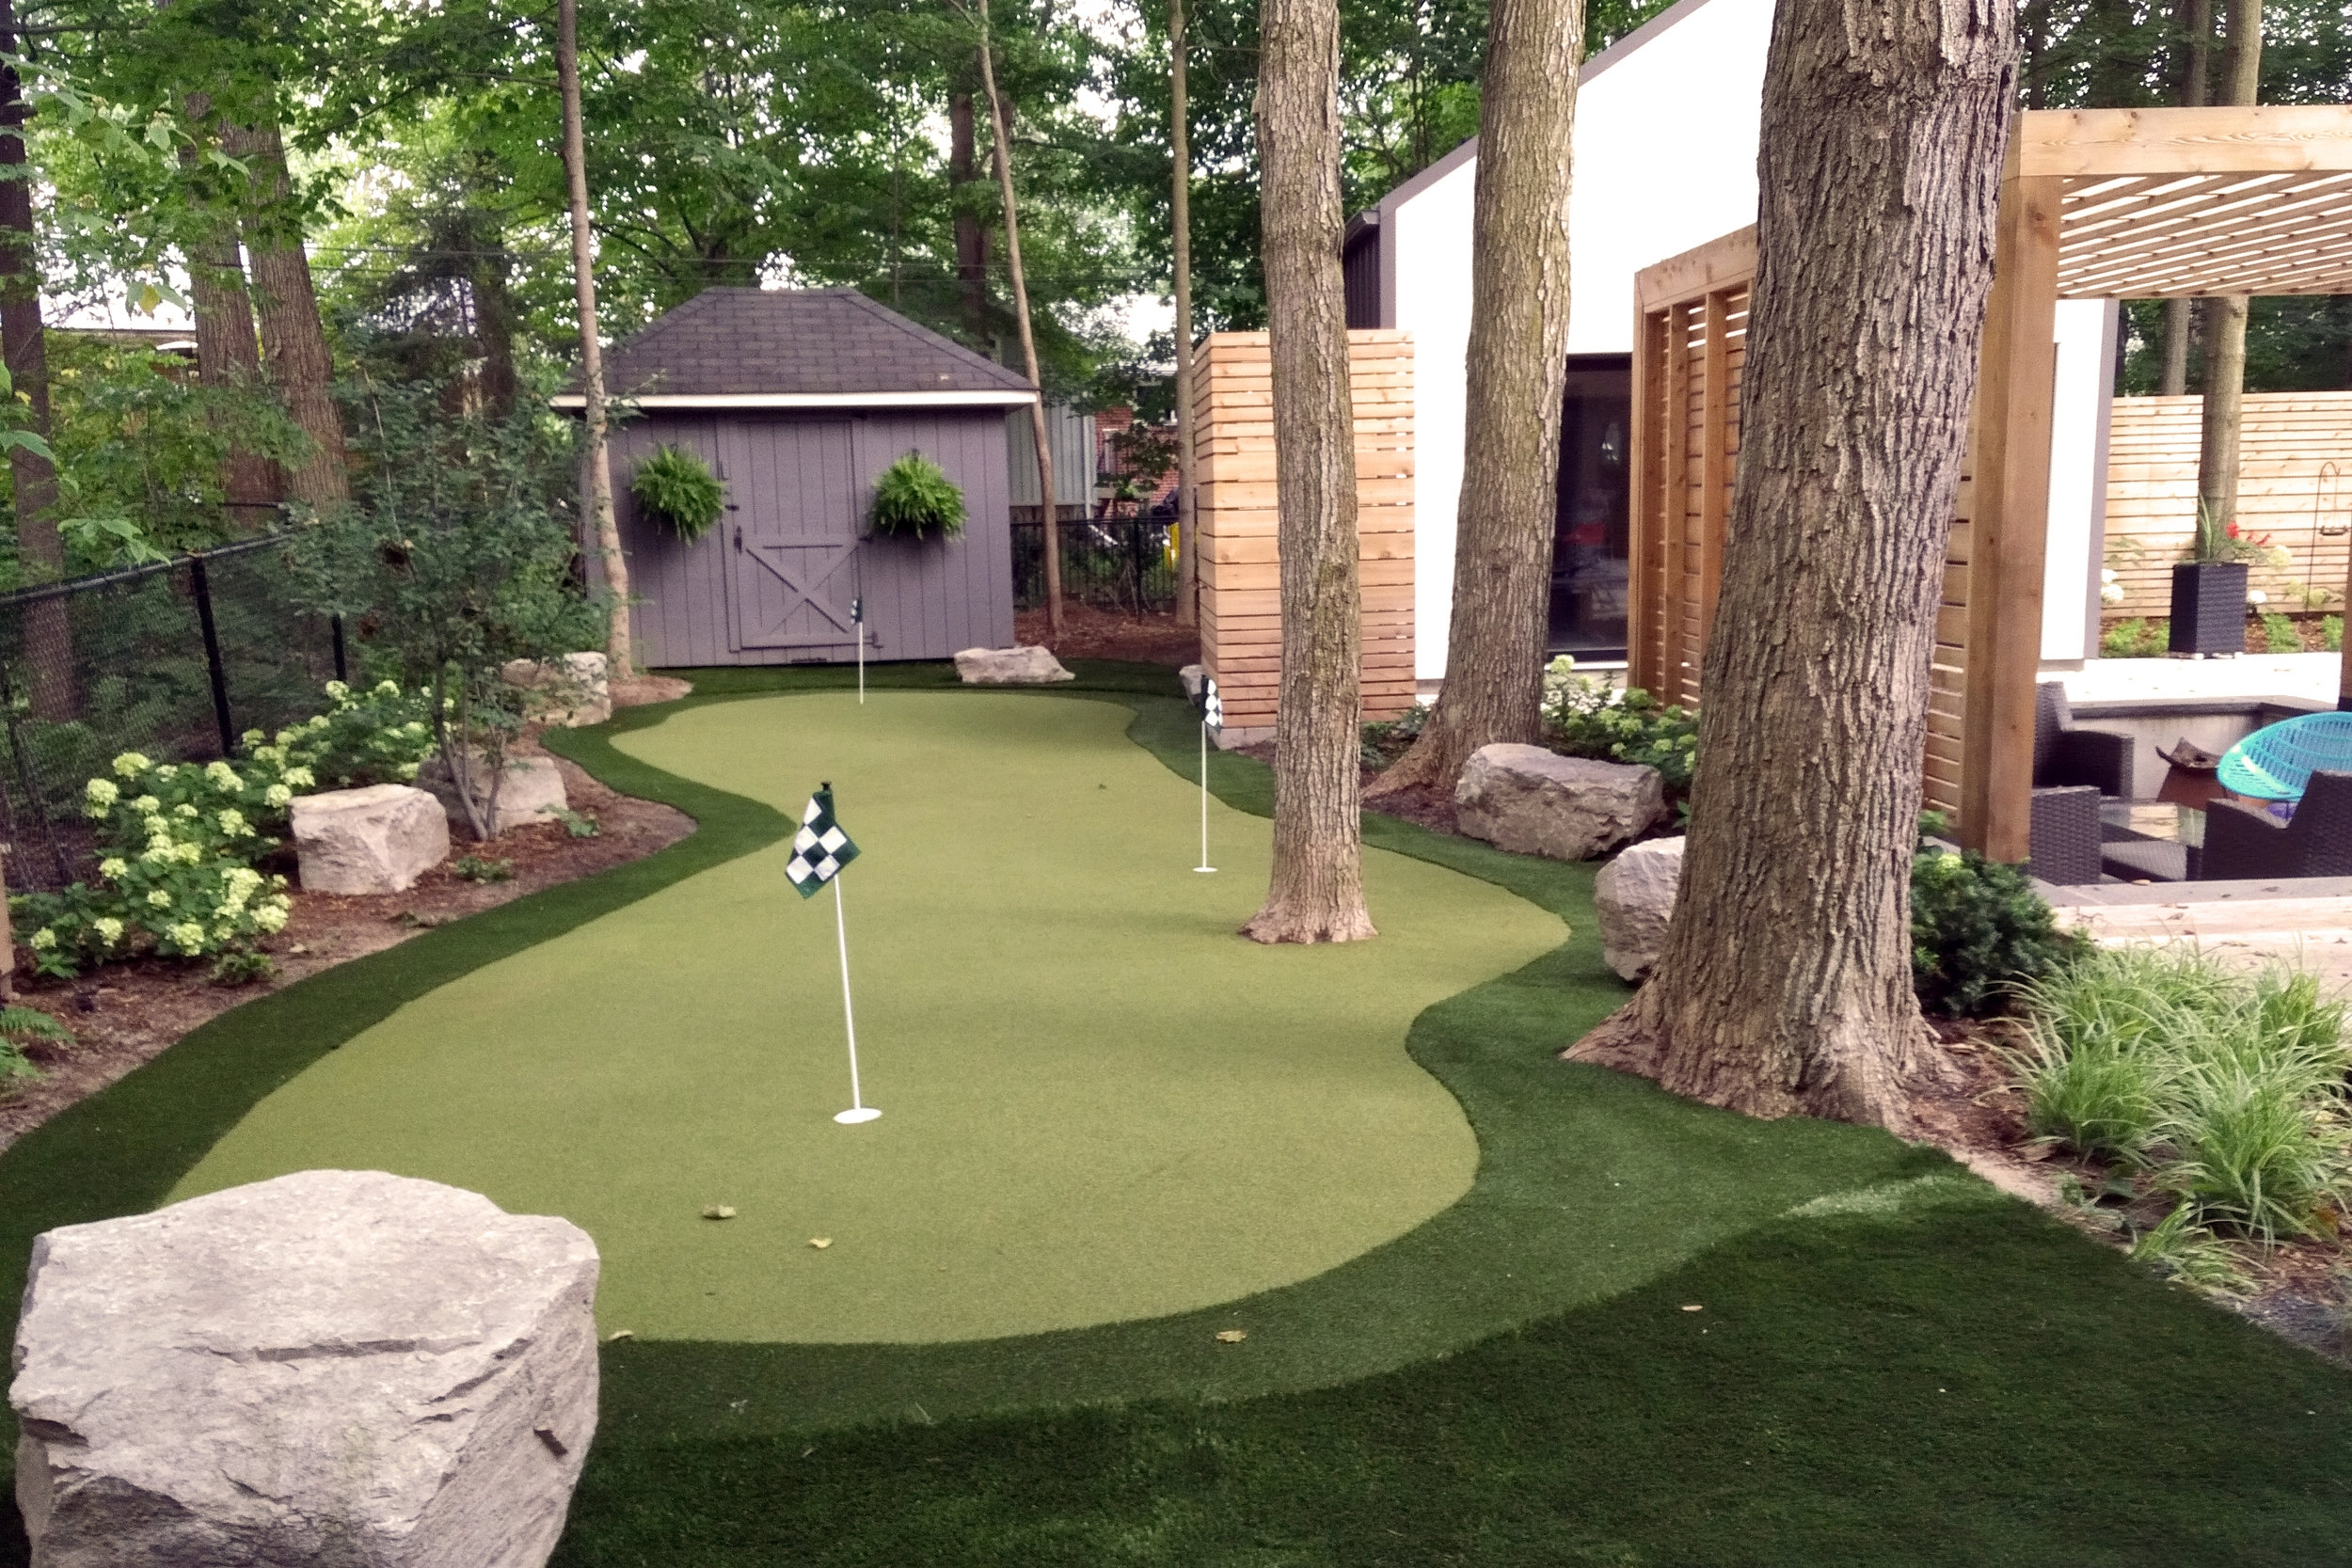 Lawn Sports Yard Mini Putt golf green backyard